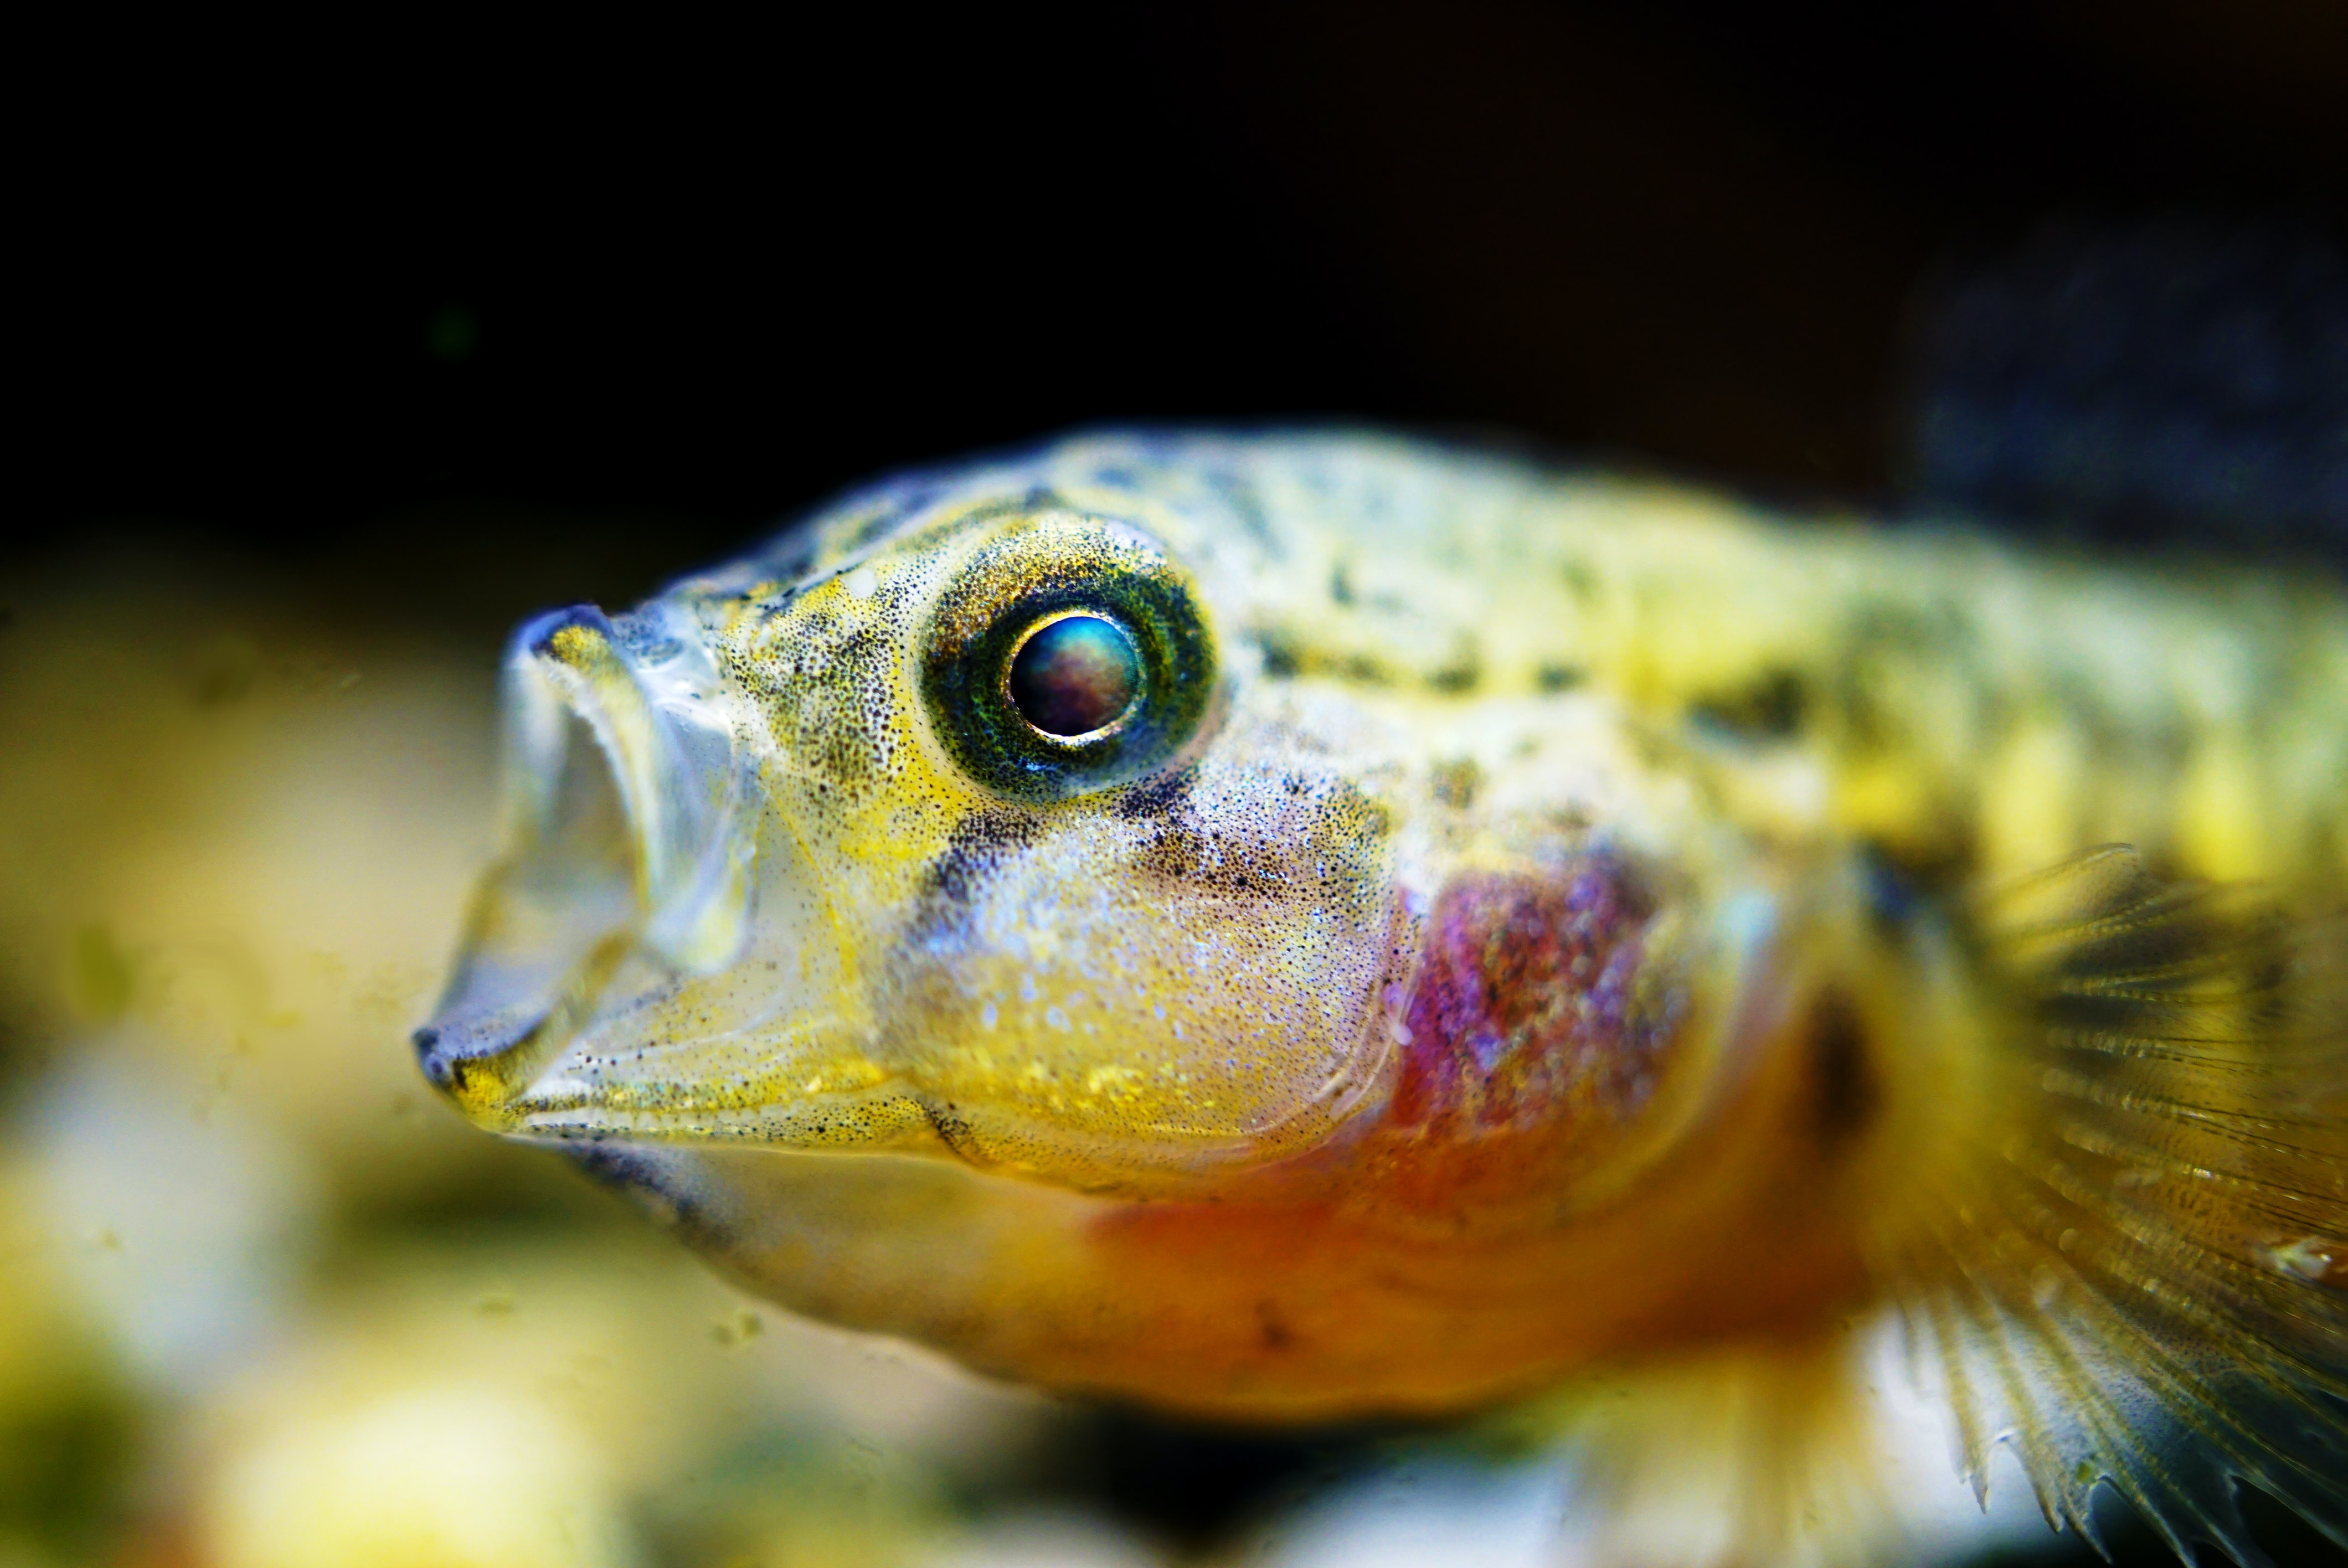 closeup photo of yellow and black fish